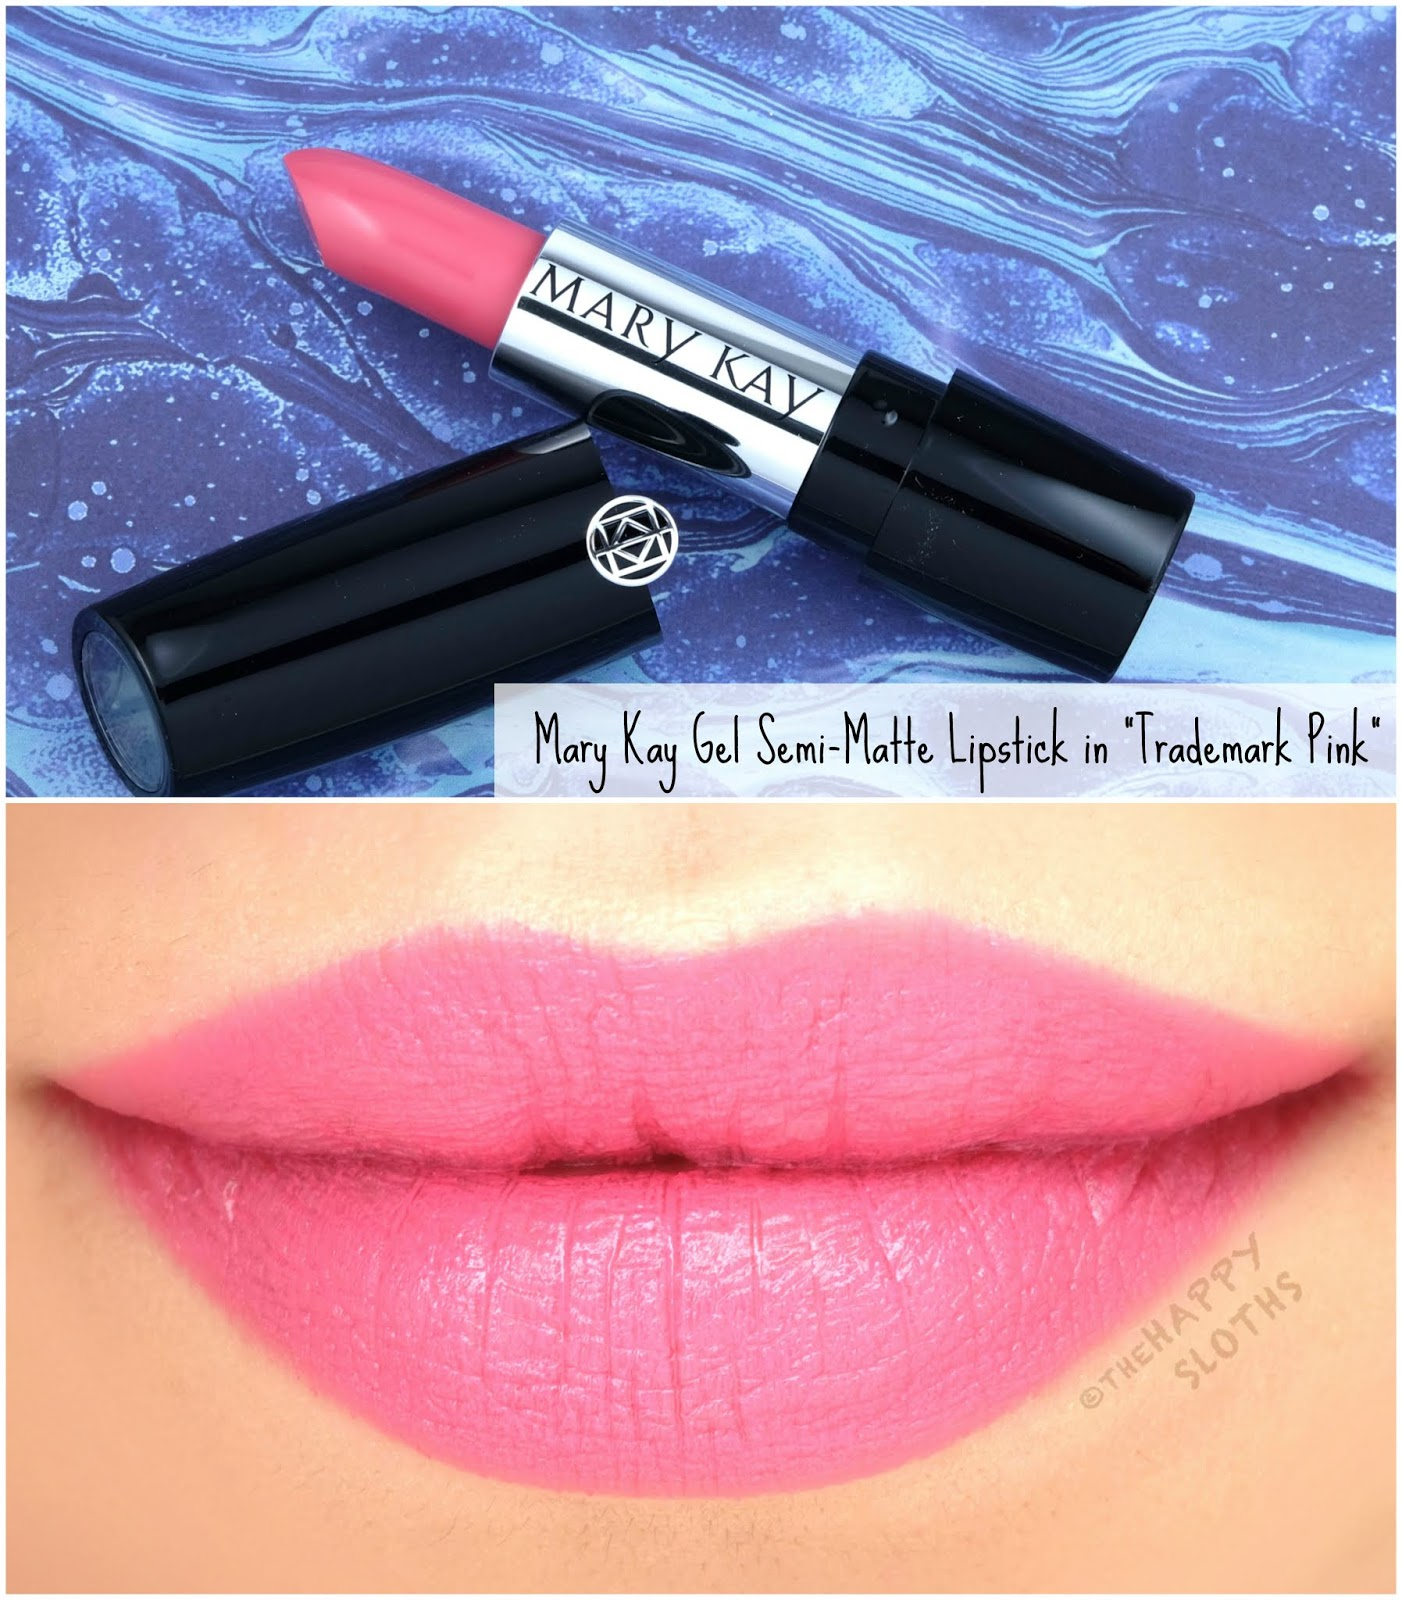 """Mary Kay   Spring 2020 Gel Semi-Matte Lipstick in """"Trademark Pink"""": Review and Swatches"""